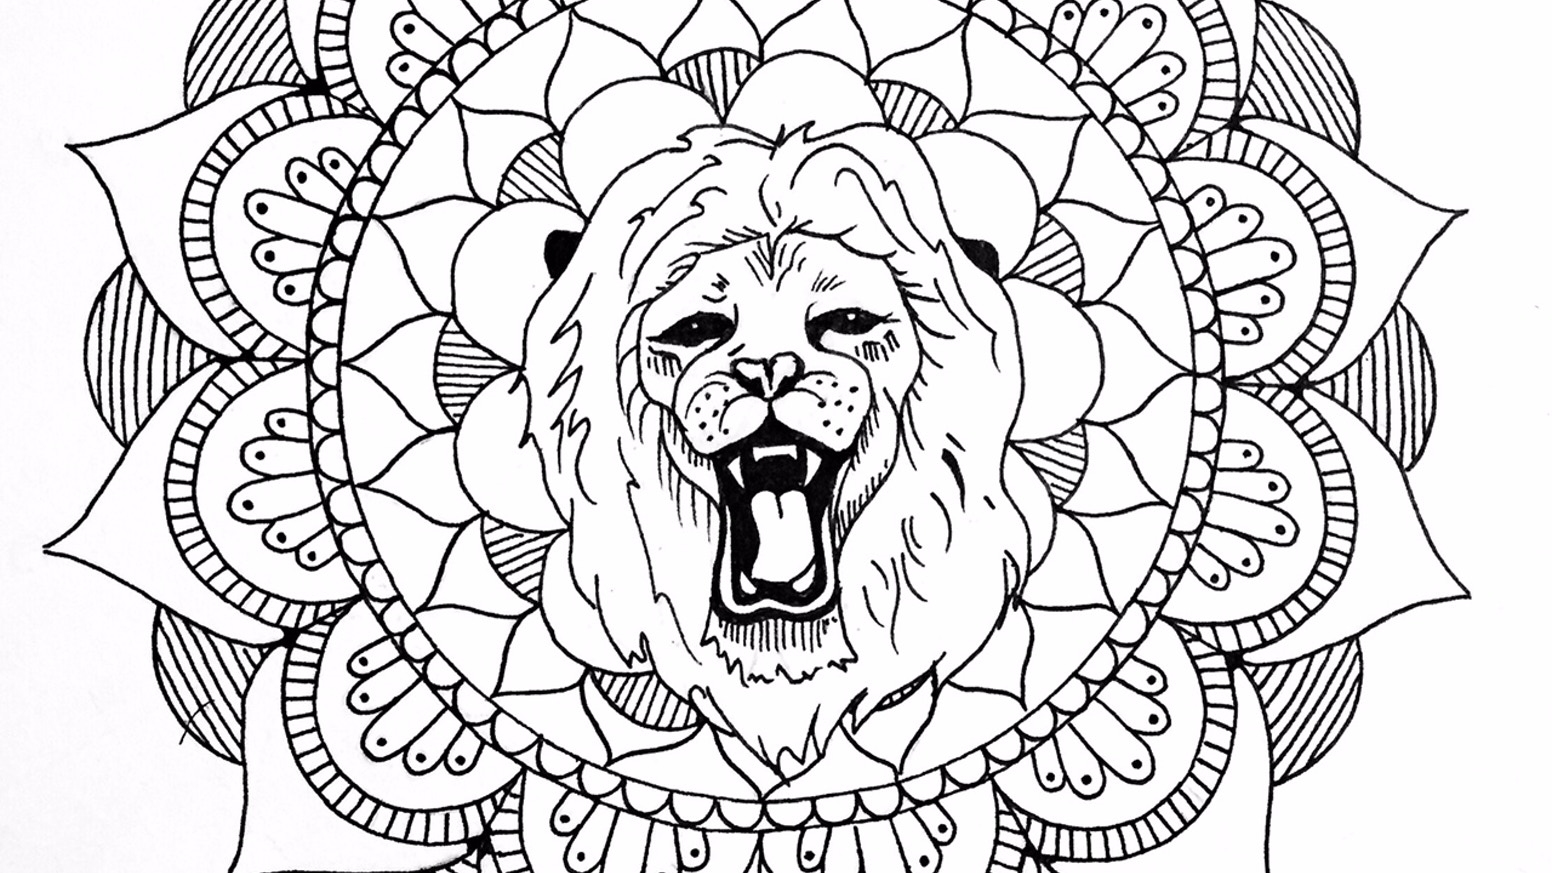 Meditation and Hand Cramps, An Adult Coloring Book by Becca Leisch ...